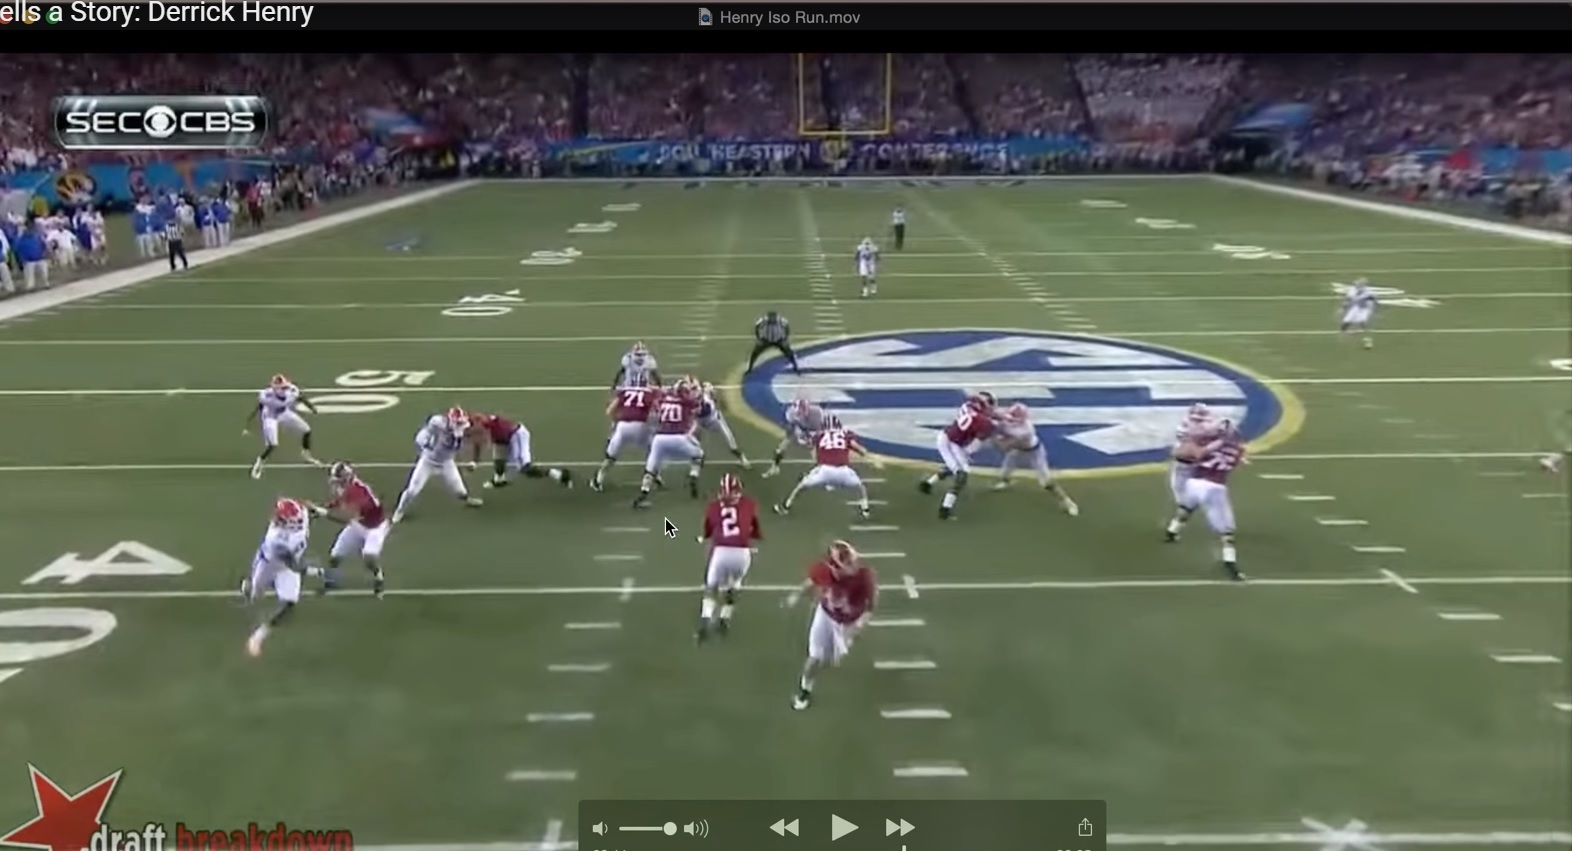 Every Play Tells a Story: RB Derrick Henry & Forcing the Counter